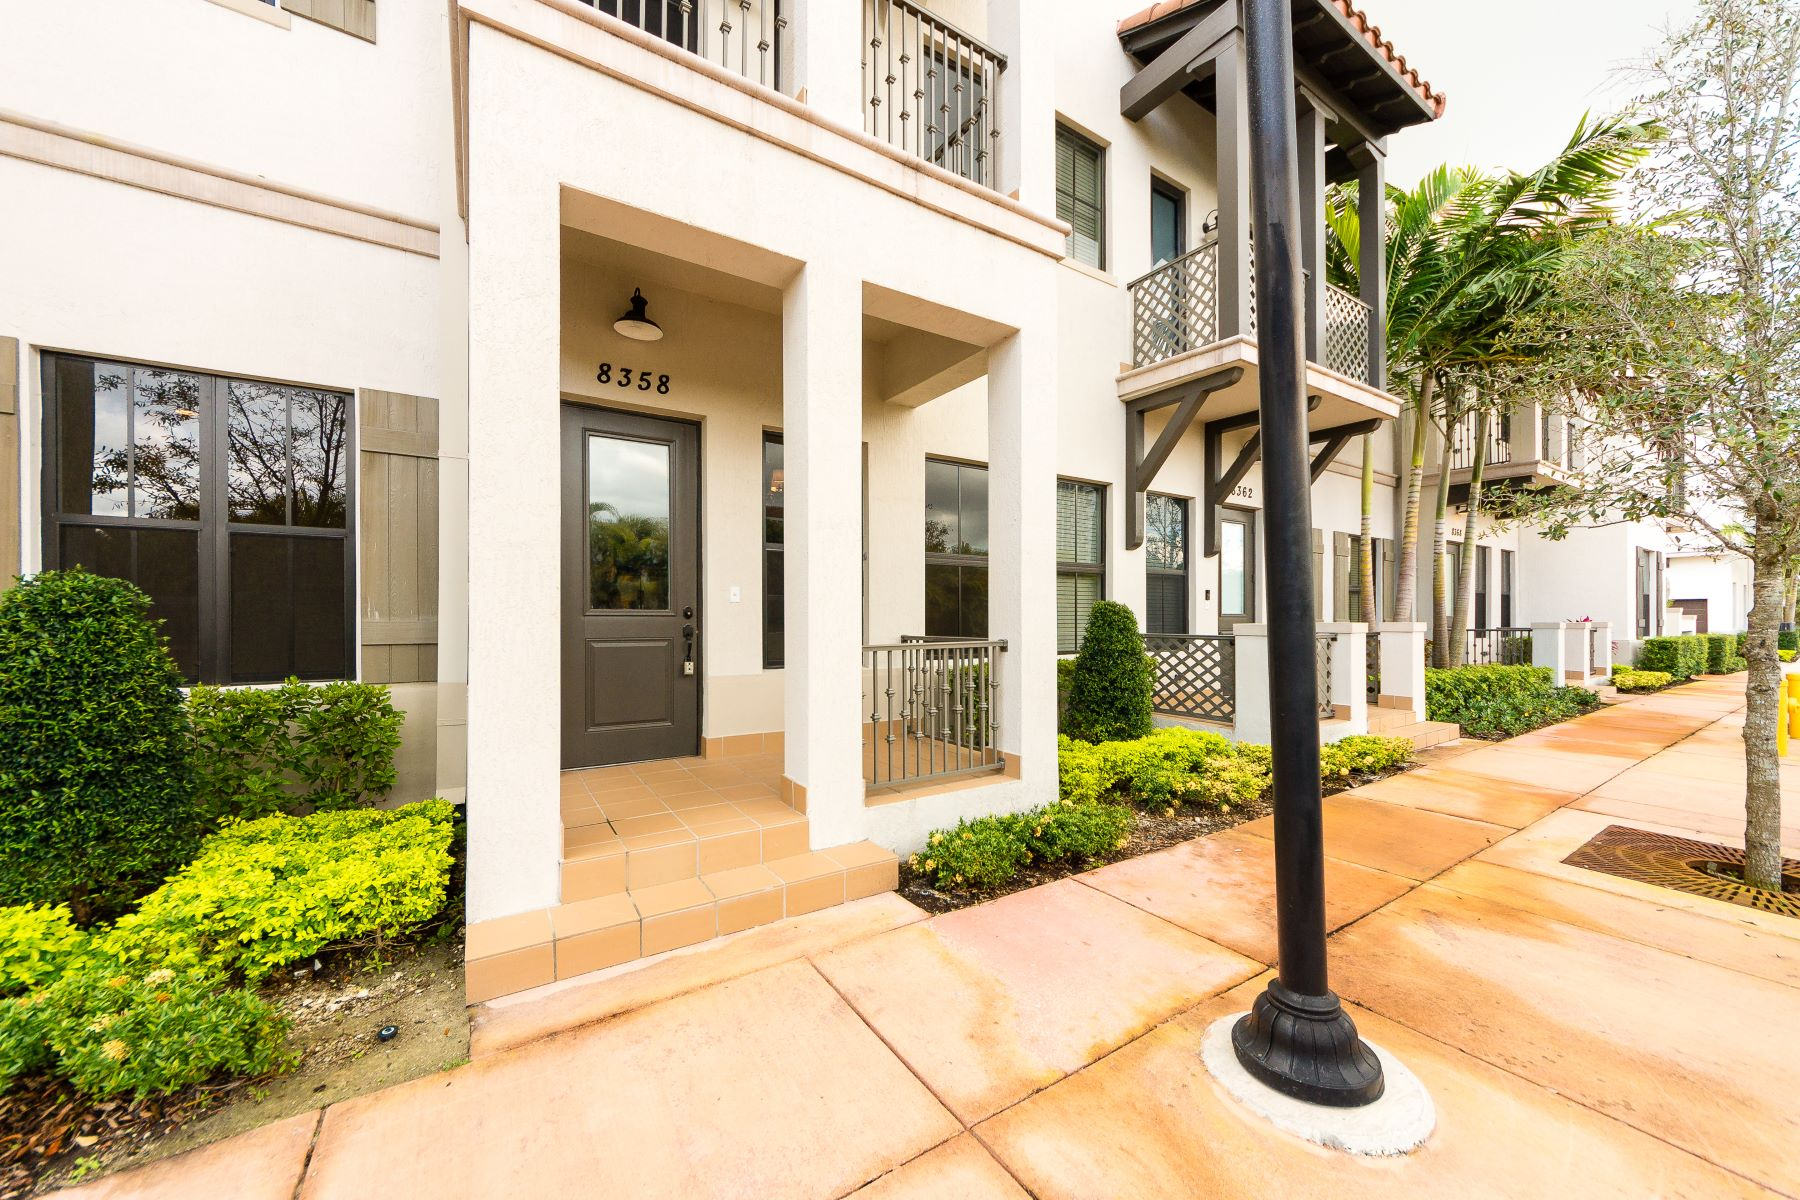 Townhouse for Sale at 8358 Nw 52nd Ter #8358 8358 Nw 52nd Ter 8358 Doral, Florida 33166 United States